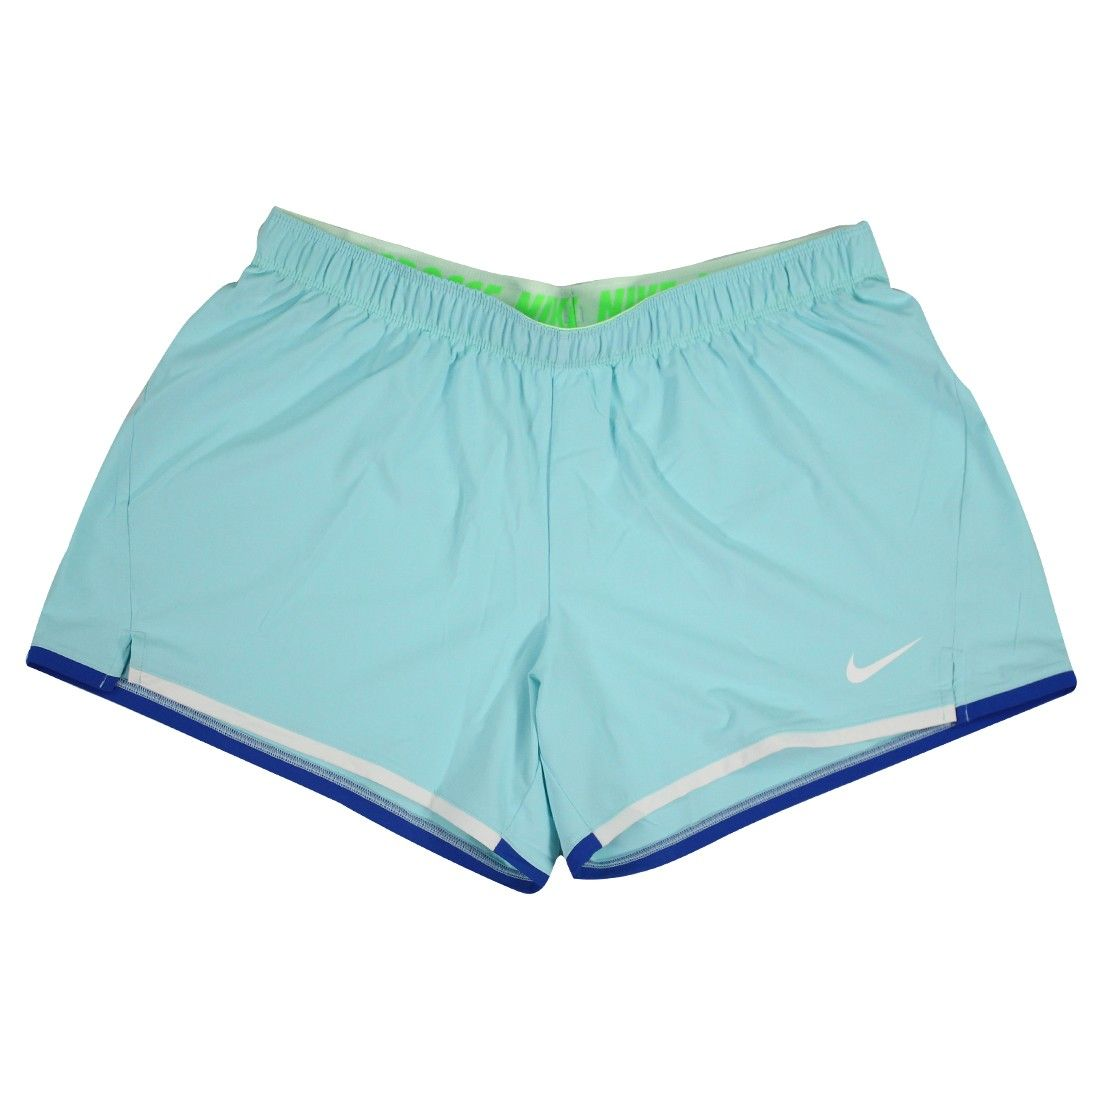 252e4cd09f29 Lacrosse Unlimited Nike Womens Lacrosse Shorts. Dri-FIT technology helps  keep you dry and